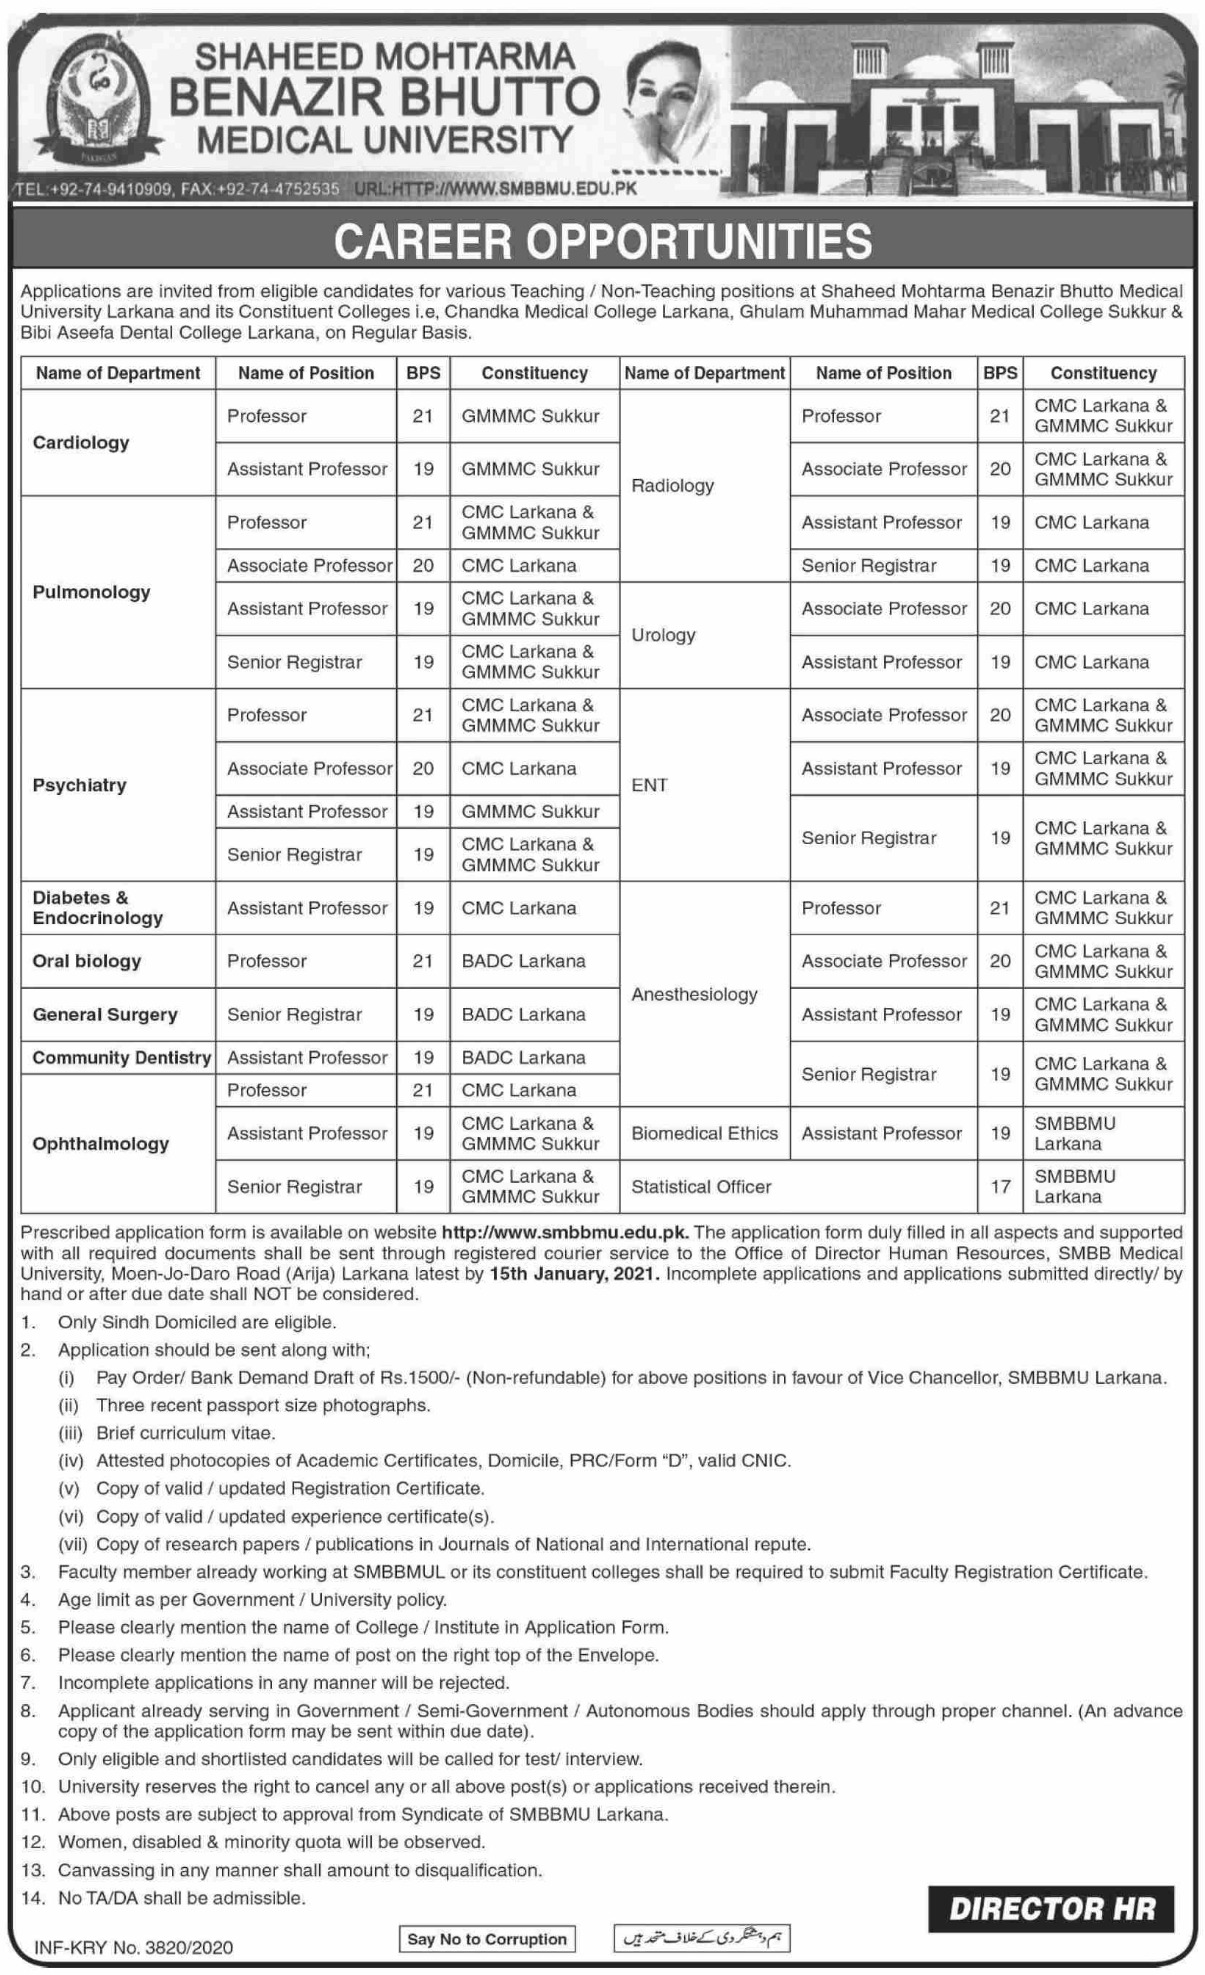 Shaheed Mohtarma Benazir Bhutto Medical University SMBBMU Larkana Jobs December 2020